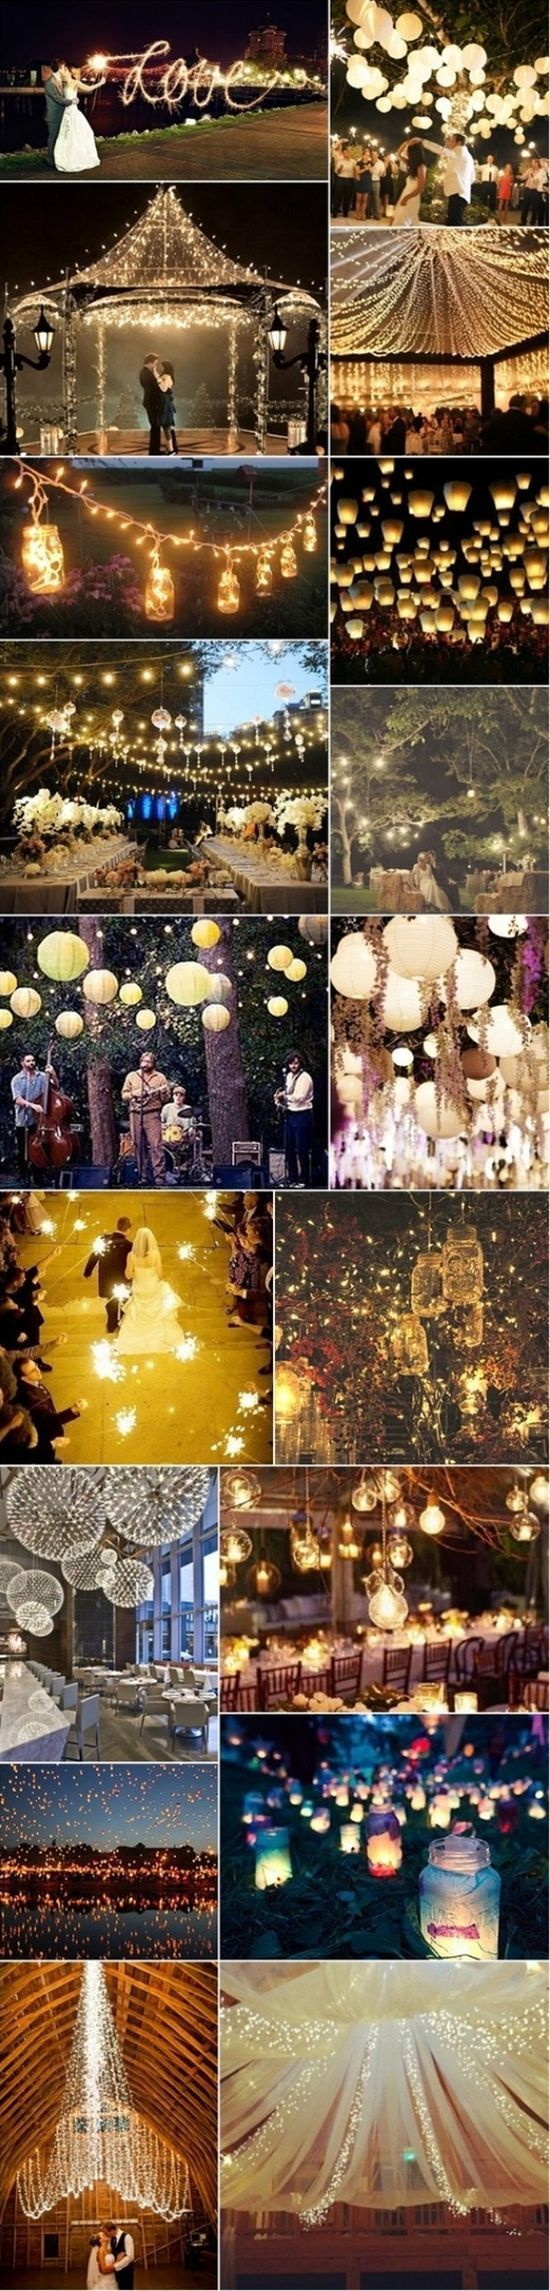 unusual wedding photos ideas%0A Elegant And Unique Wedding Light Decors   Weddings and things   Pinterest    Unique weddings  Elegant and Unique